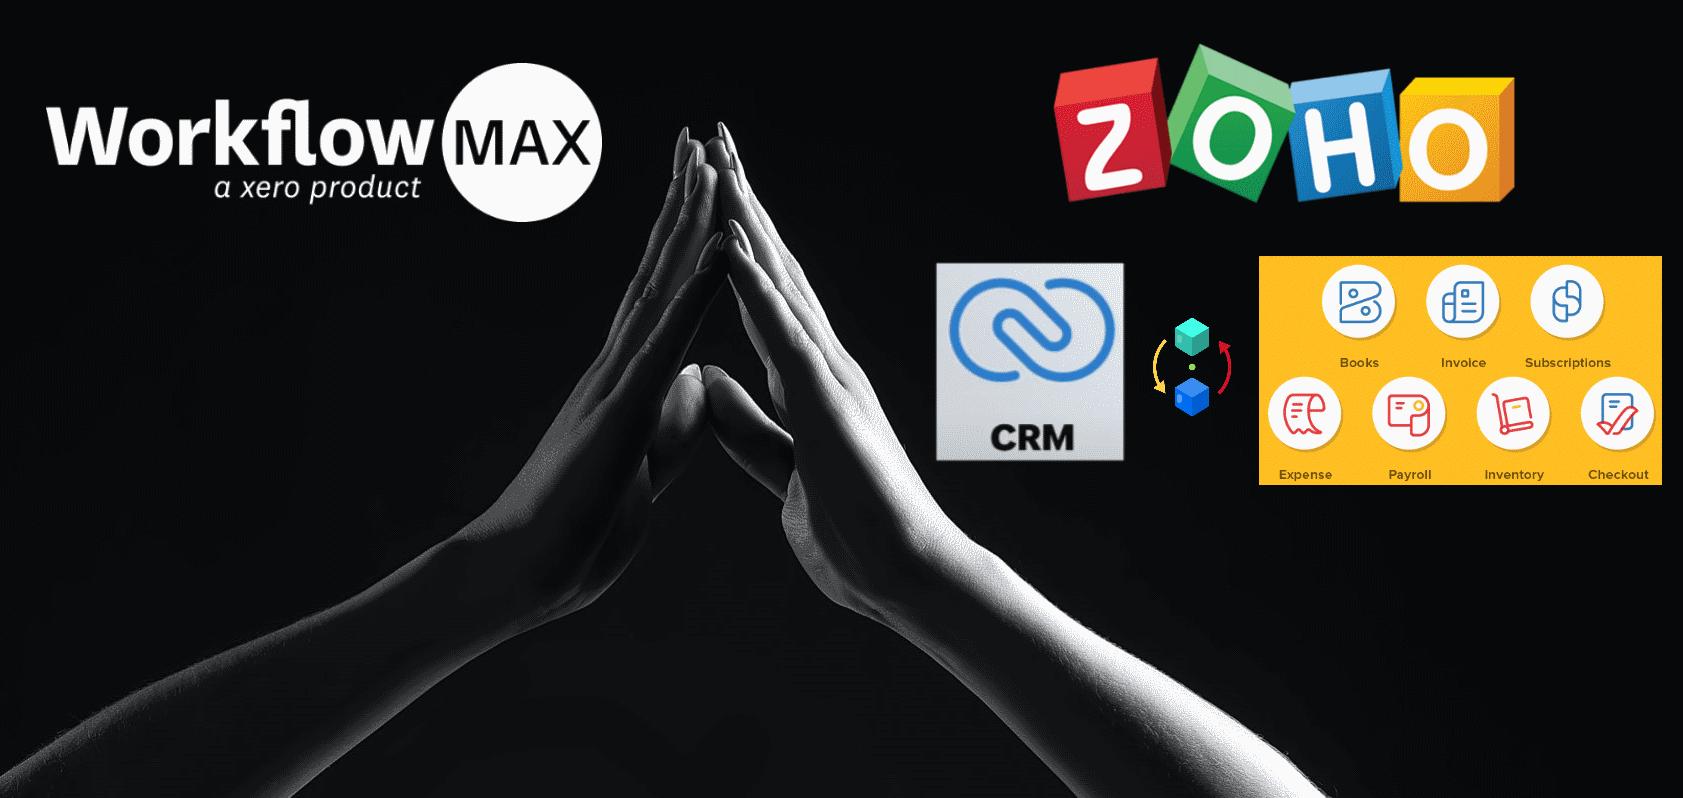 WorkflowMax and Zoho Integration